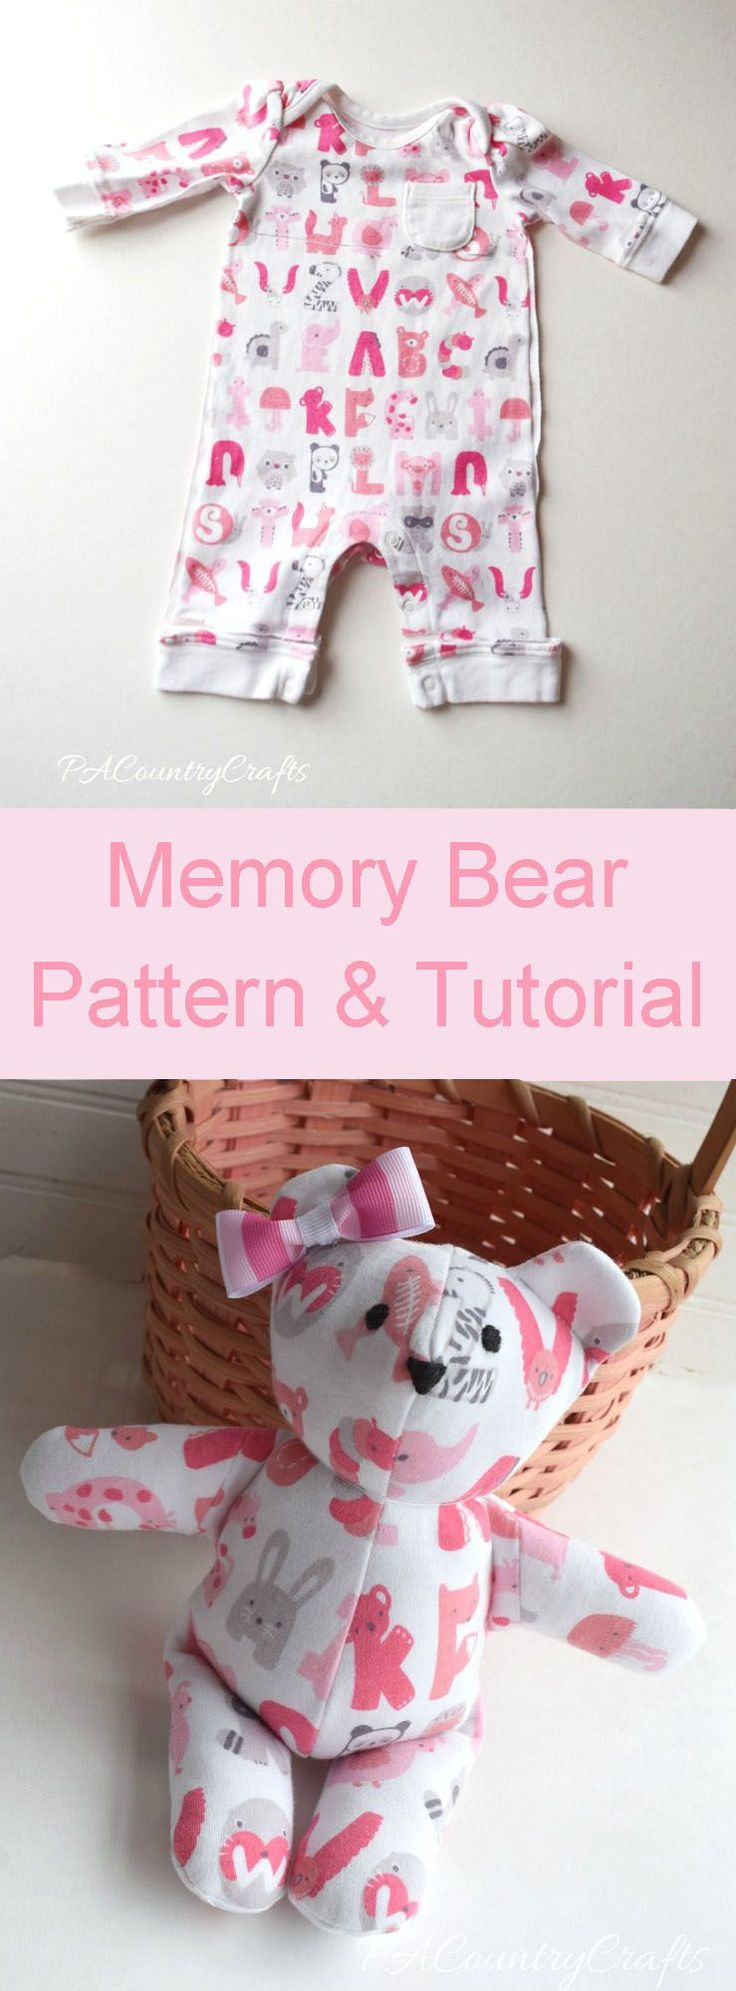 Use Baby's Going Home From The Hospital Outfit To Make A Keepsake Stuffed  Memory Bear With